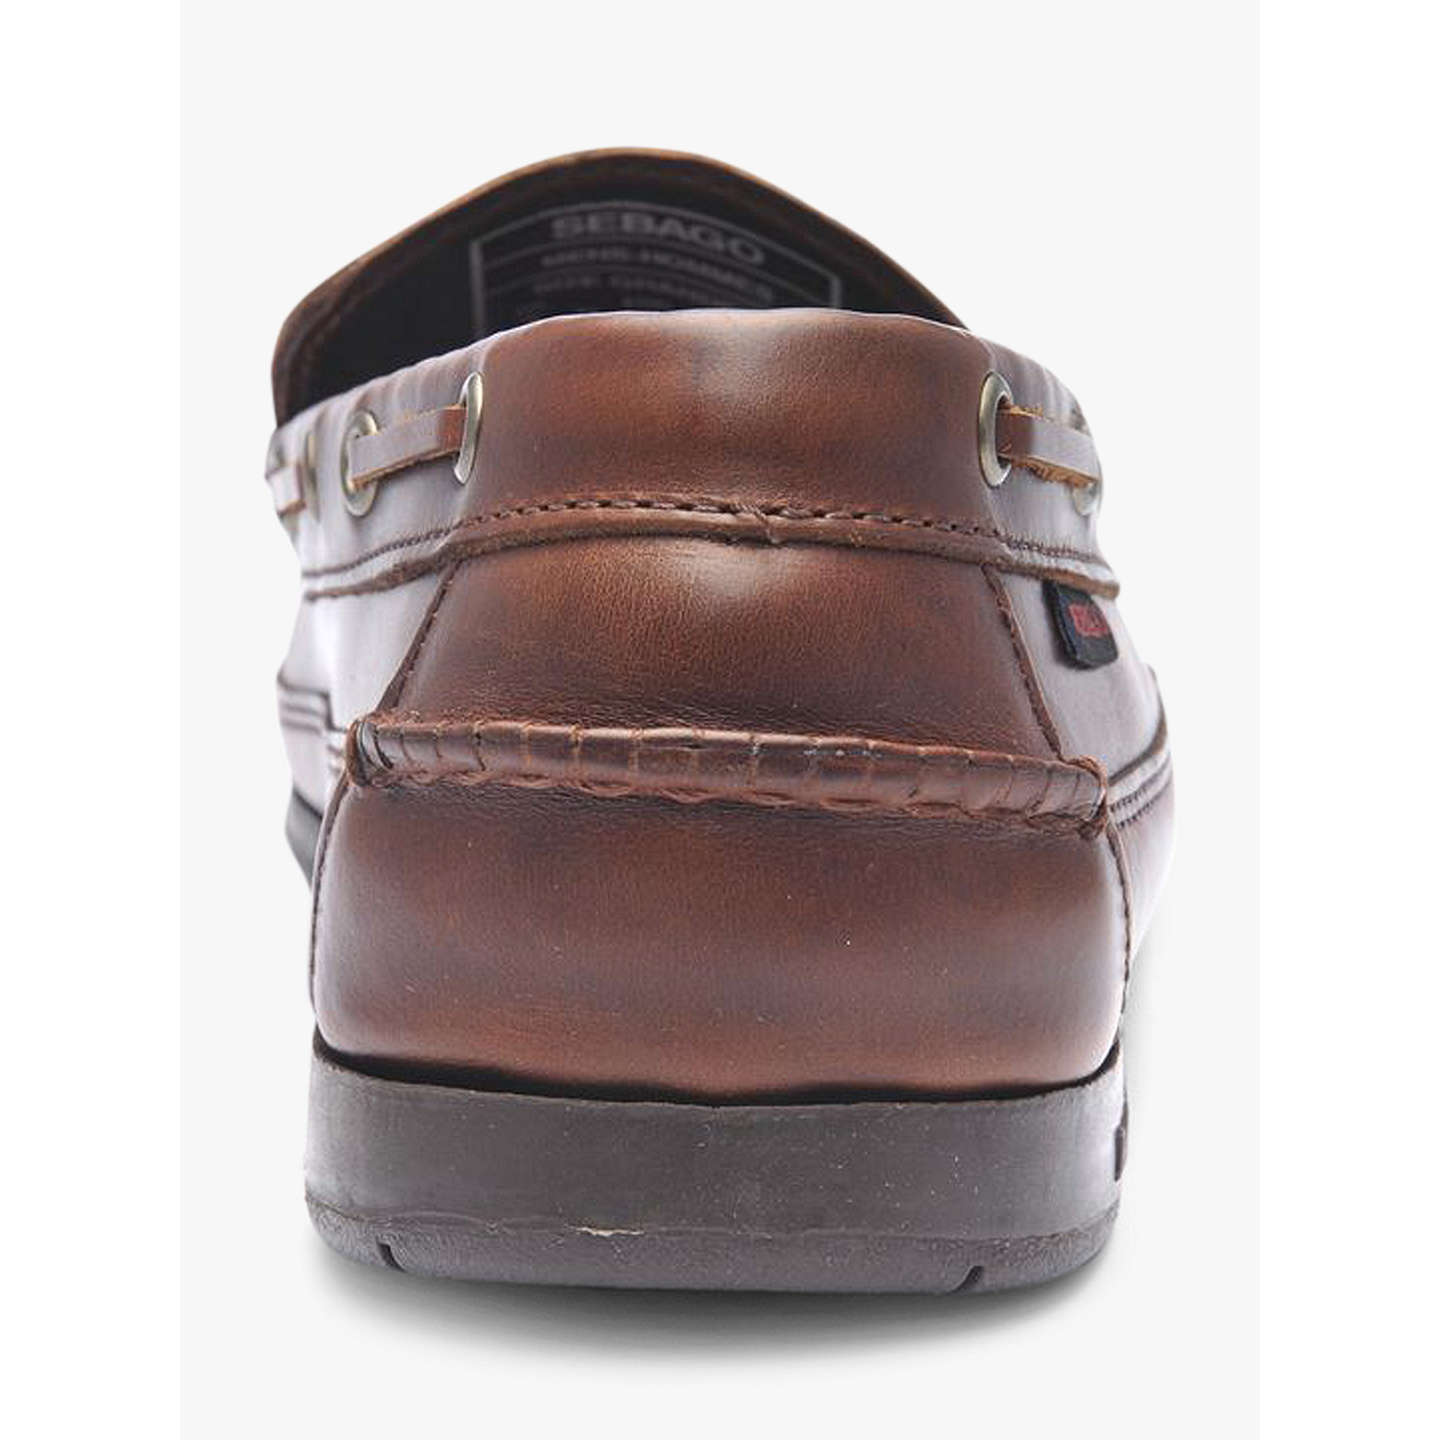 BuySebago Ketch Leather Boat Shoes, Brown, 7 Online at johnlewis.com